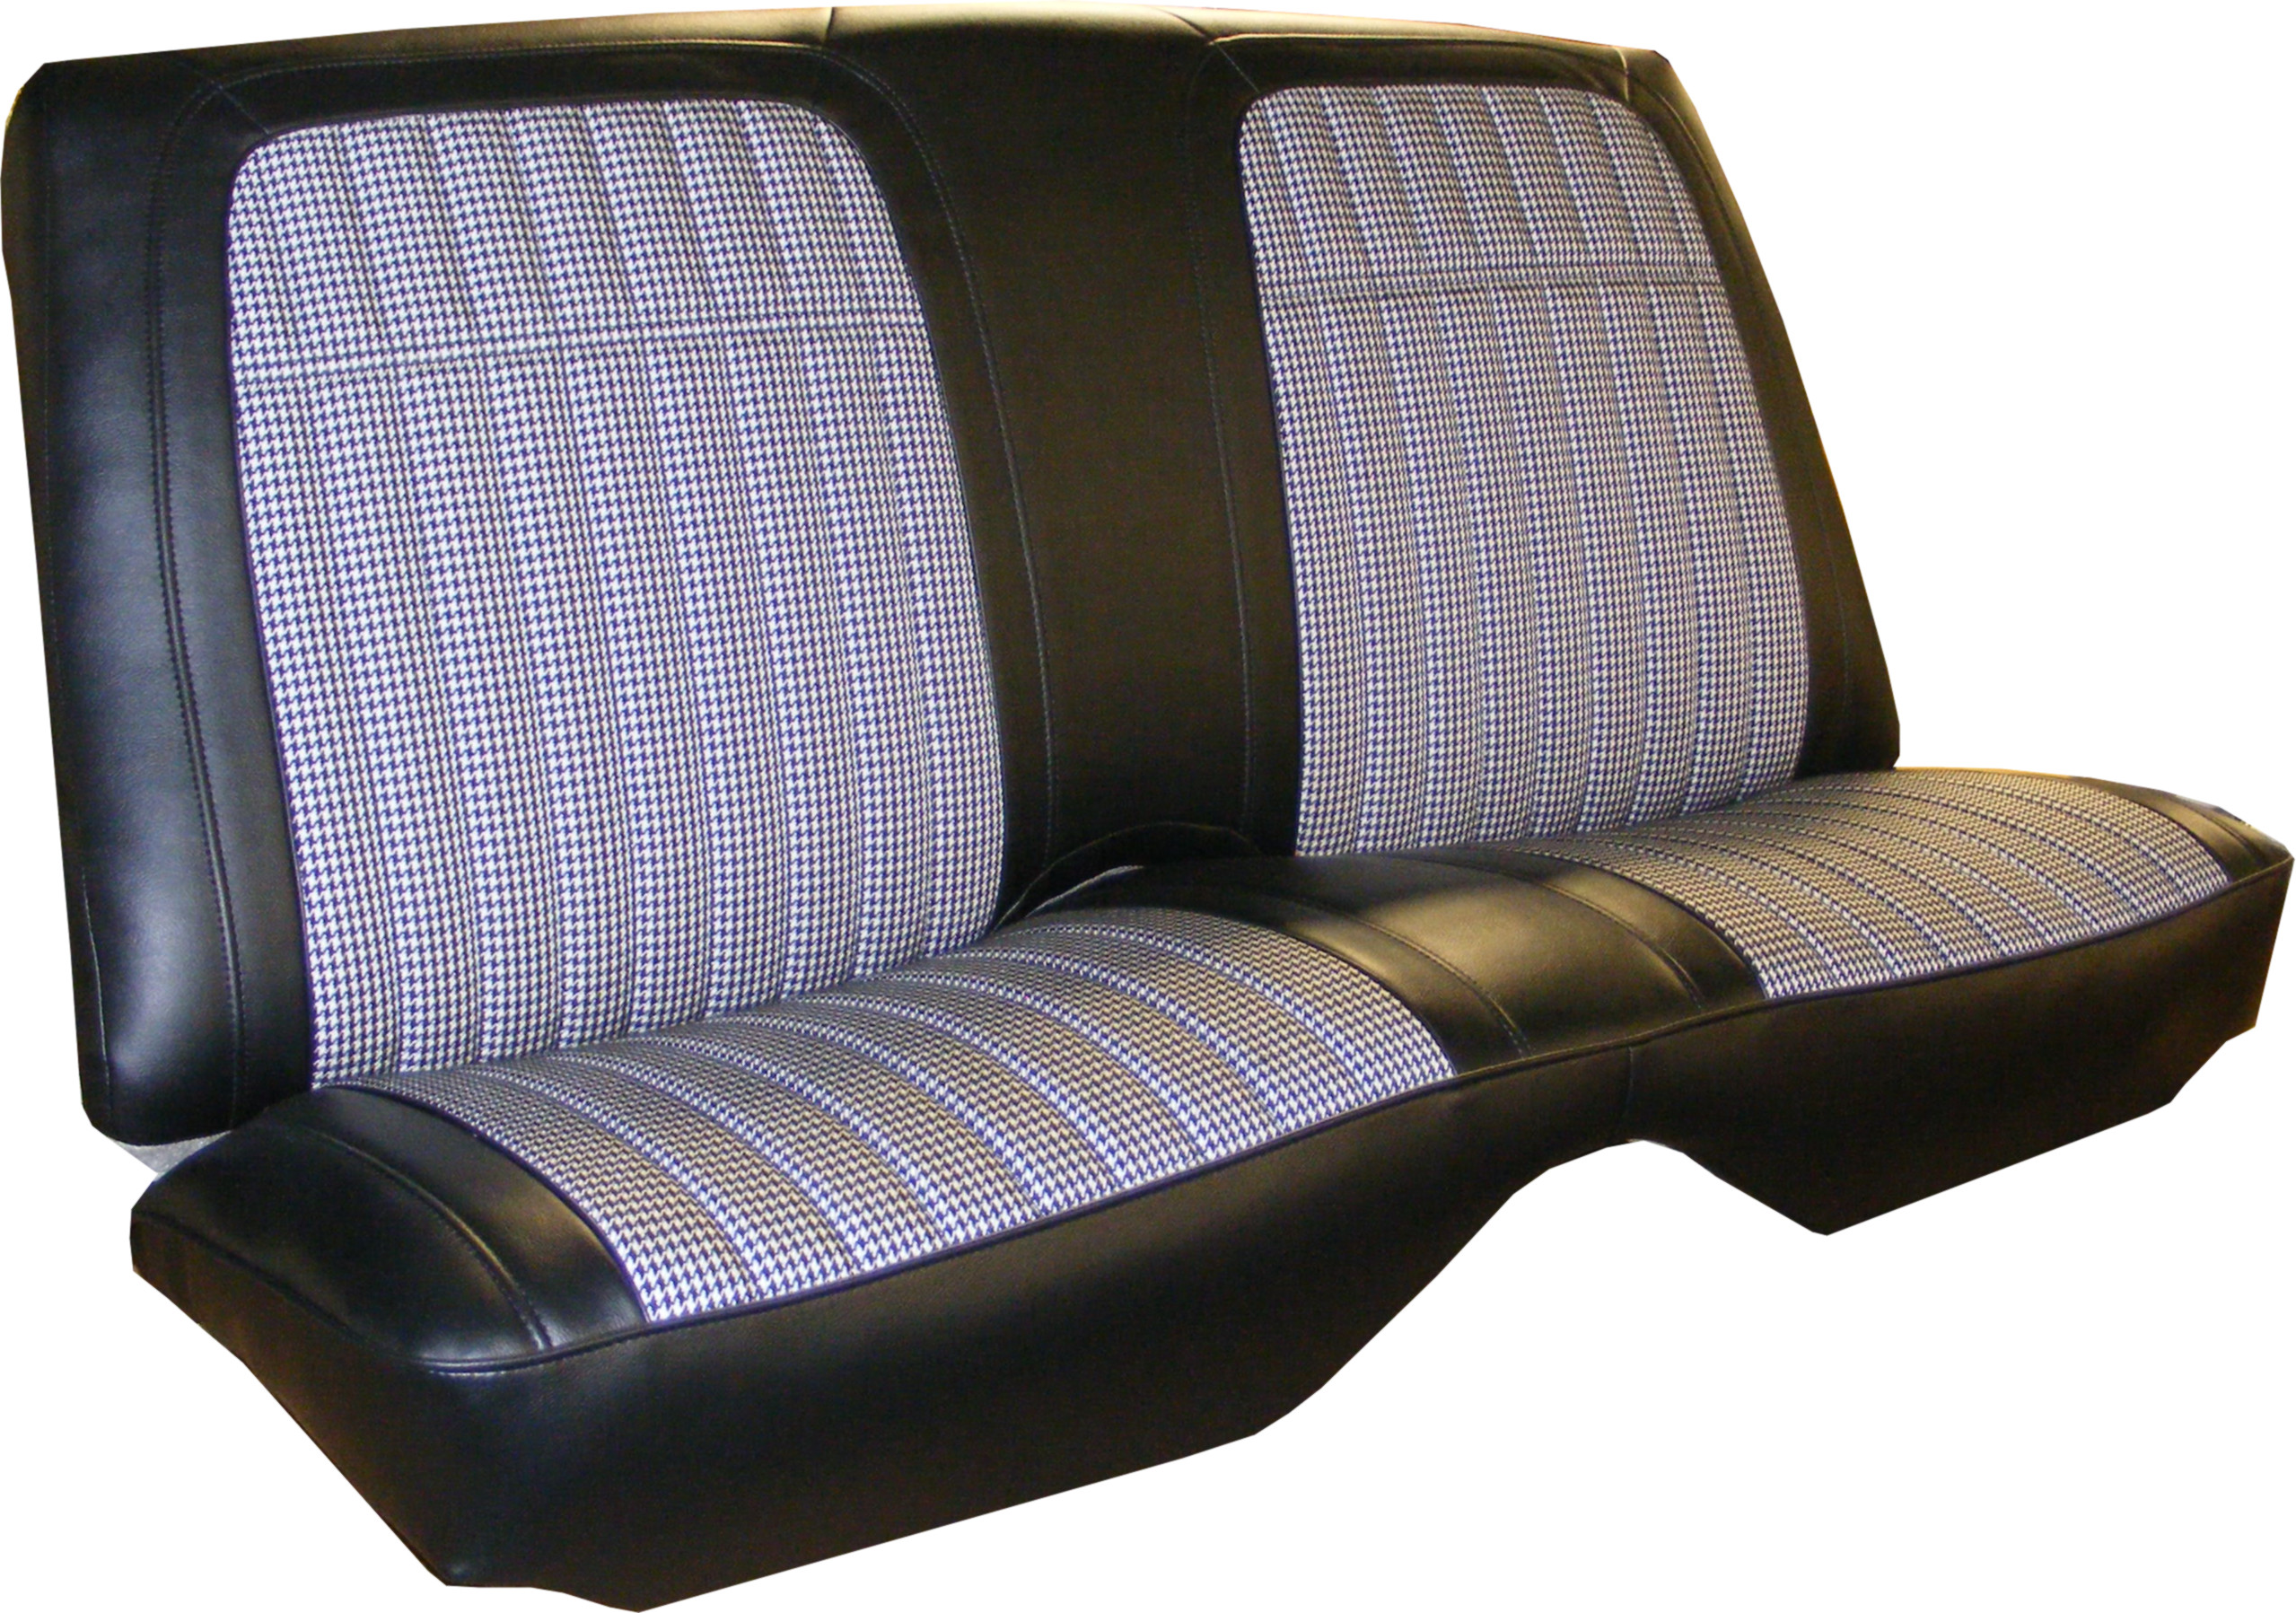 Excellent 1968 Camaro Deluxe Coupe Rear Seat Covers Houndstooth White Vinyl Onthecornerstone Fun Painted Chair Ideas Images Onthecornerstoneorg